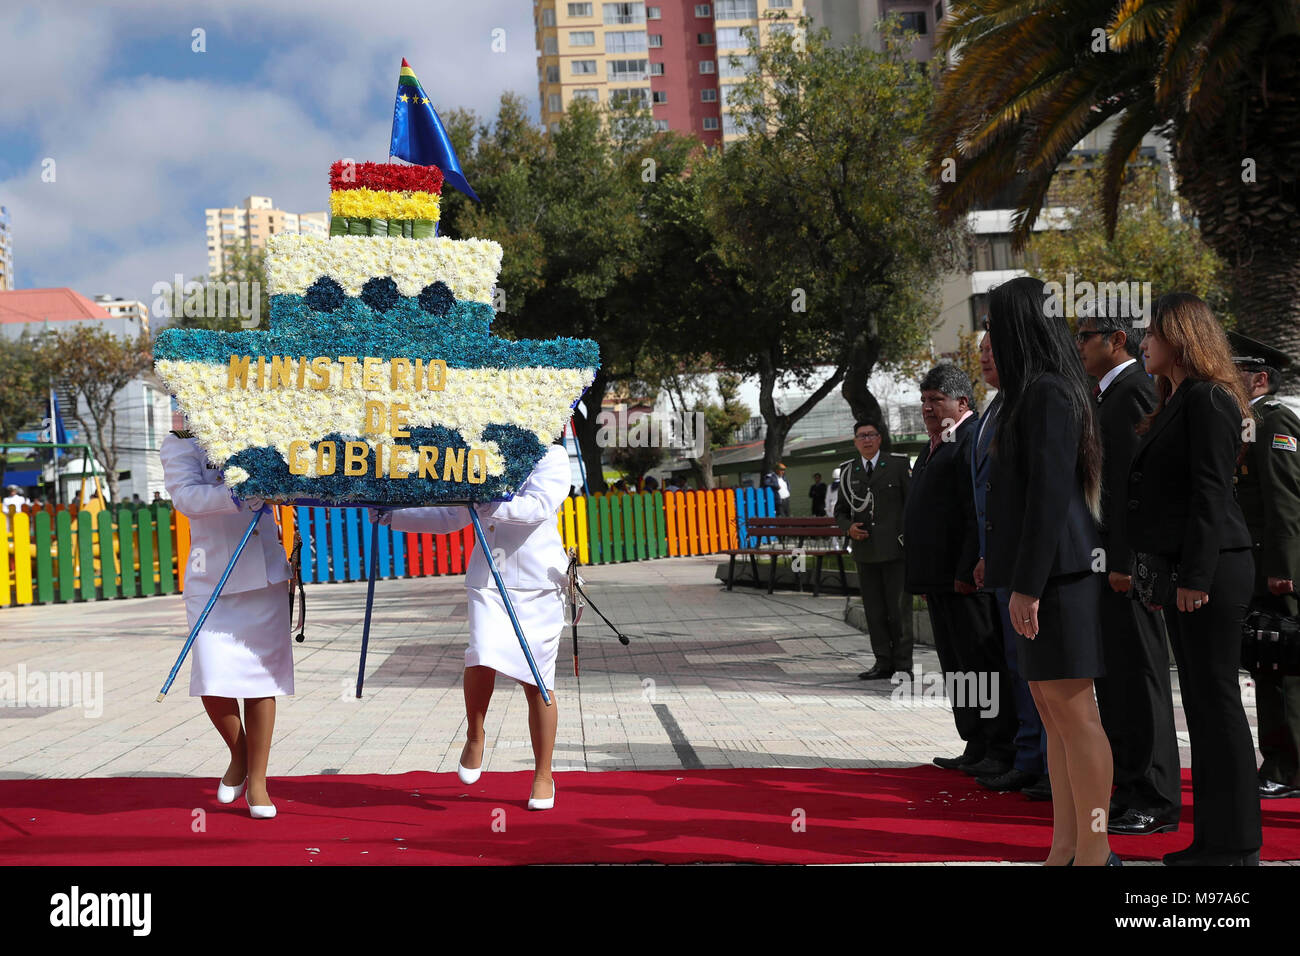 Bolivian ministers participate in a floral tribute as part of the celebrations of the Day of the Sea, during which Evo Morales invited Chile to close wounds for a 'lasting and just peace' between both countries in La Paz, Bolivia, 23 March 2018. The Bolivian President chaired the celebrations of the Day of the Sea that this year acquire a special meaning due to the development of the oral pleas at the International Court of Justice (ICJ) in The Hague for the territorial lawsuit presented by Bolivia against Chile to claim the acces to the Antofagasta sea. EFE/Martin Alipaz - Stock Image